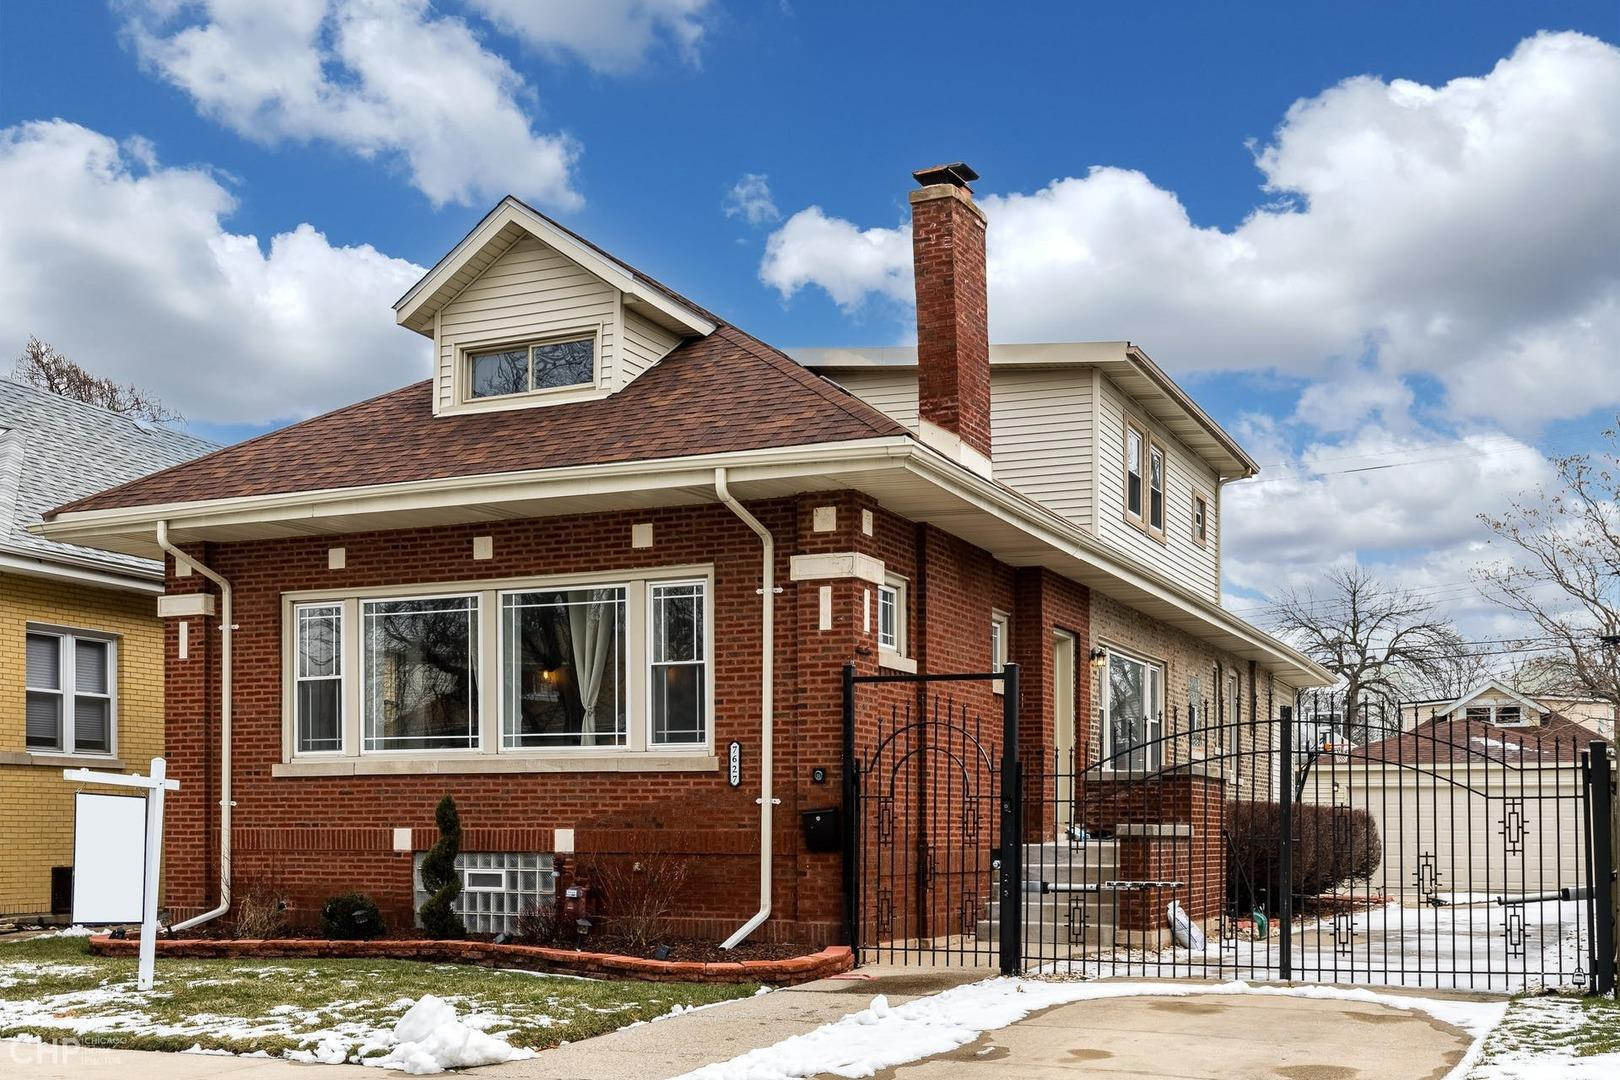 7627 S Merrill Avenue, Chicago, IL 60649 - #: 10965287